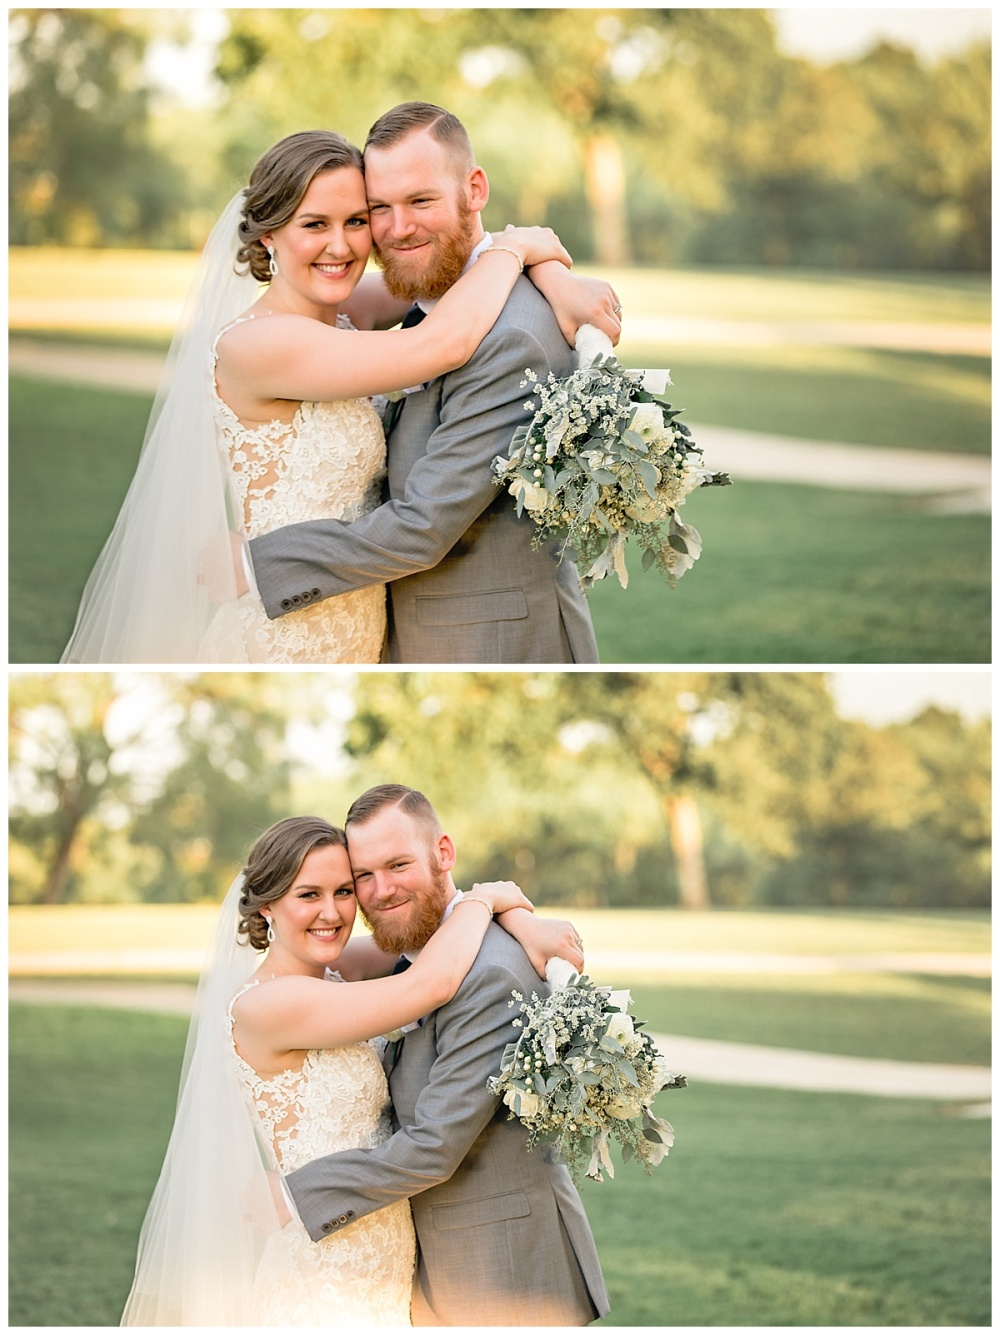 Carly-Barton-Photography-Wedding-Photos-Granberry-Hills-Event-Facility-Ryan-Chelsea-San-Antonio-Texas_0044